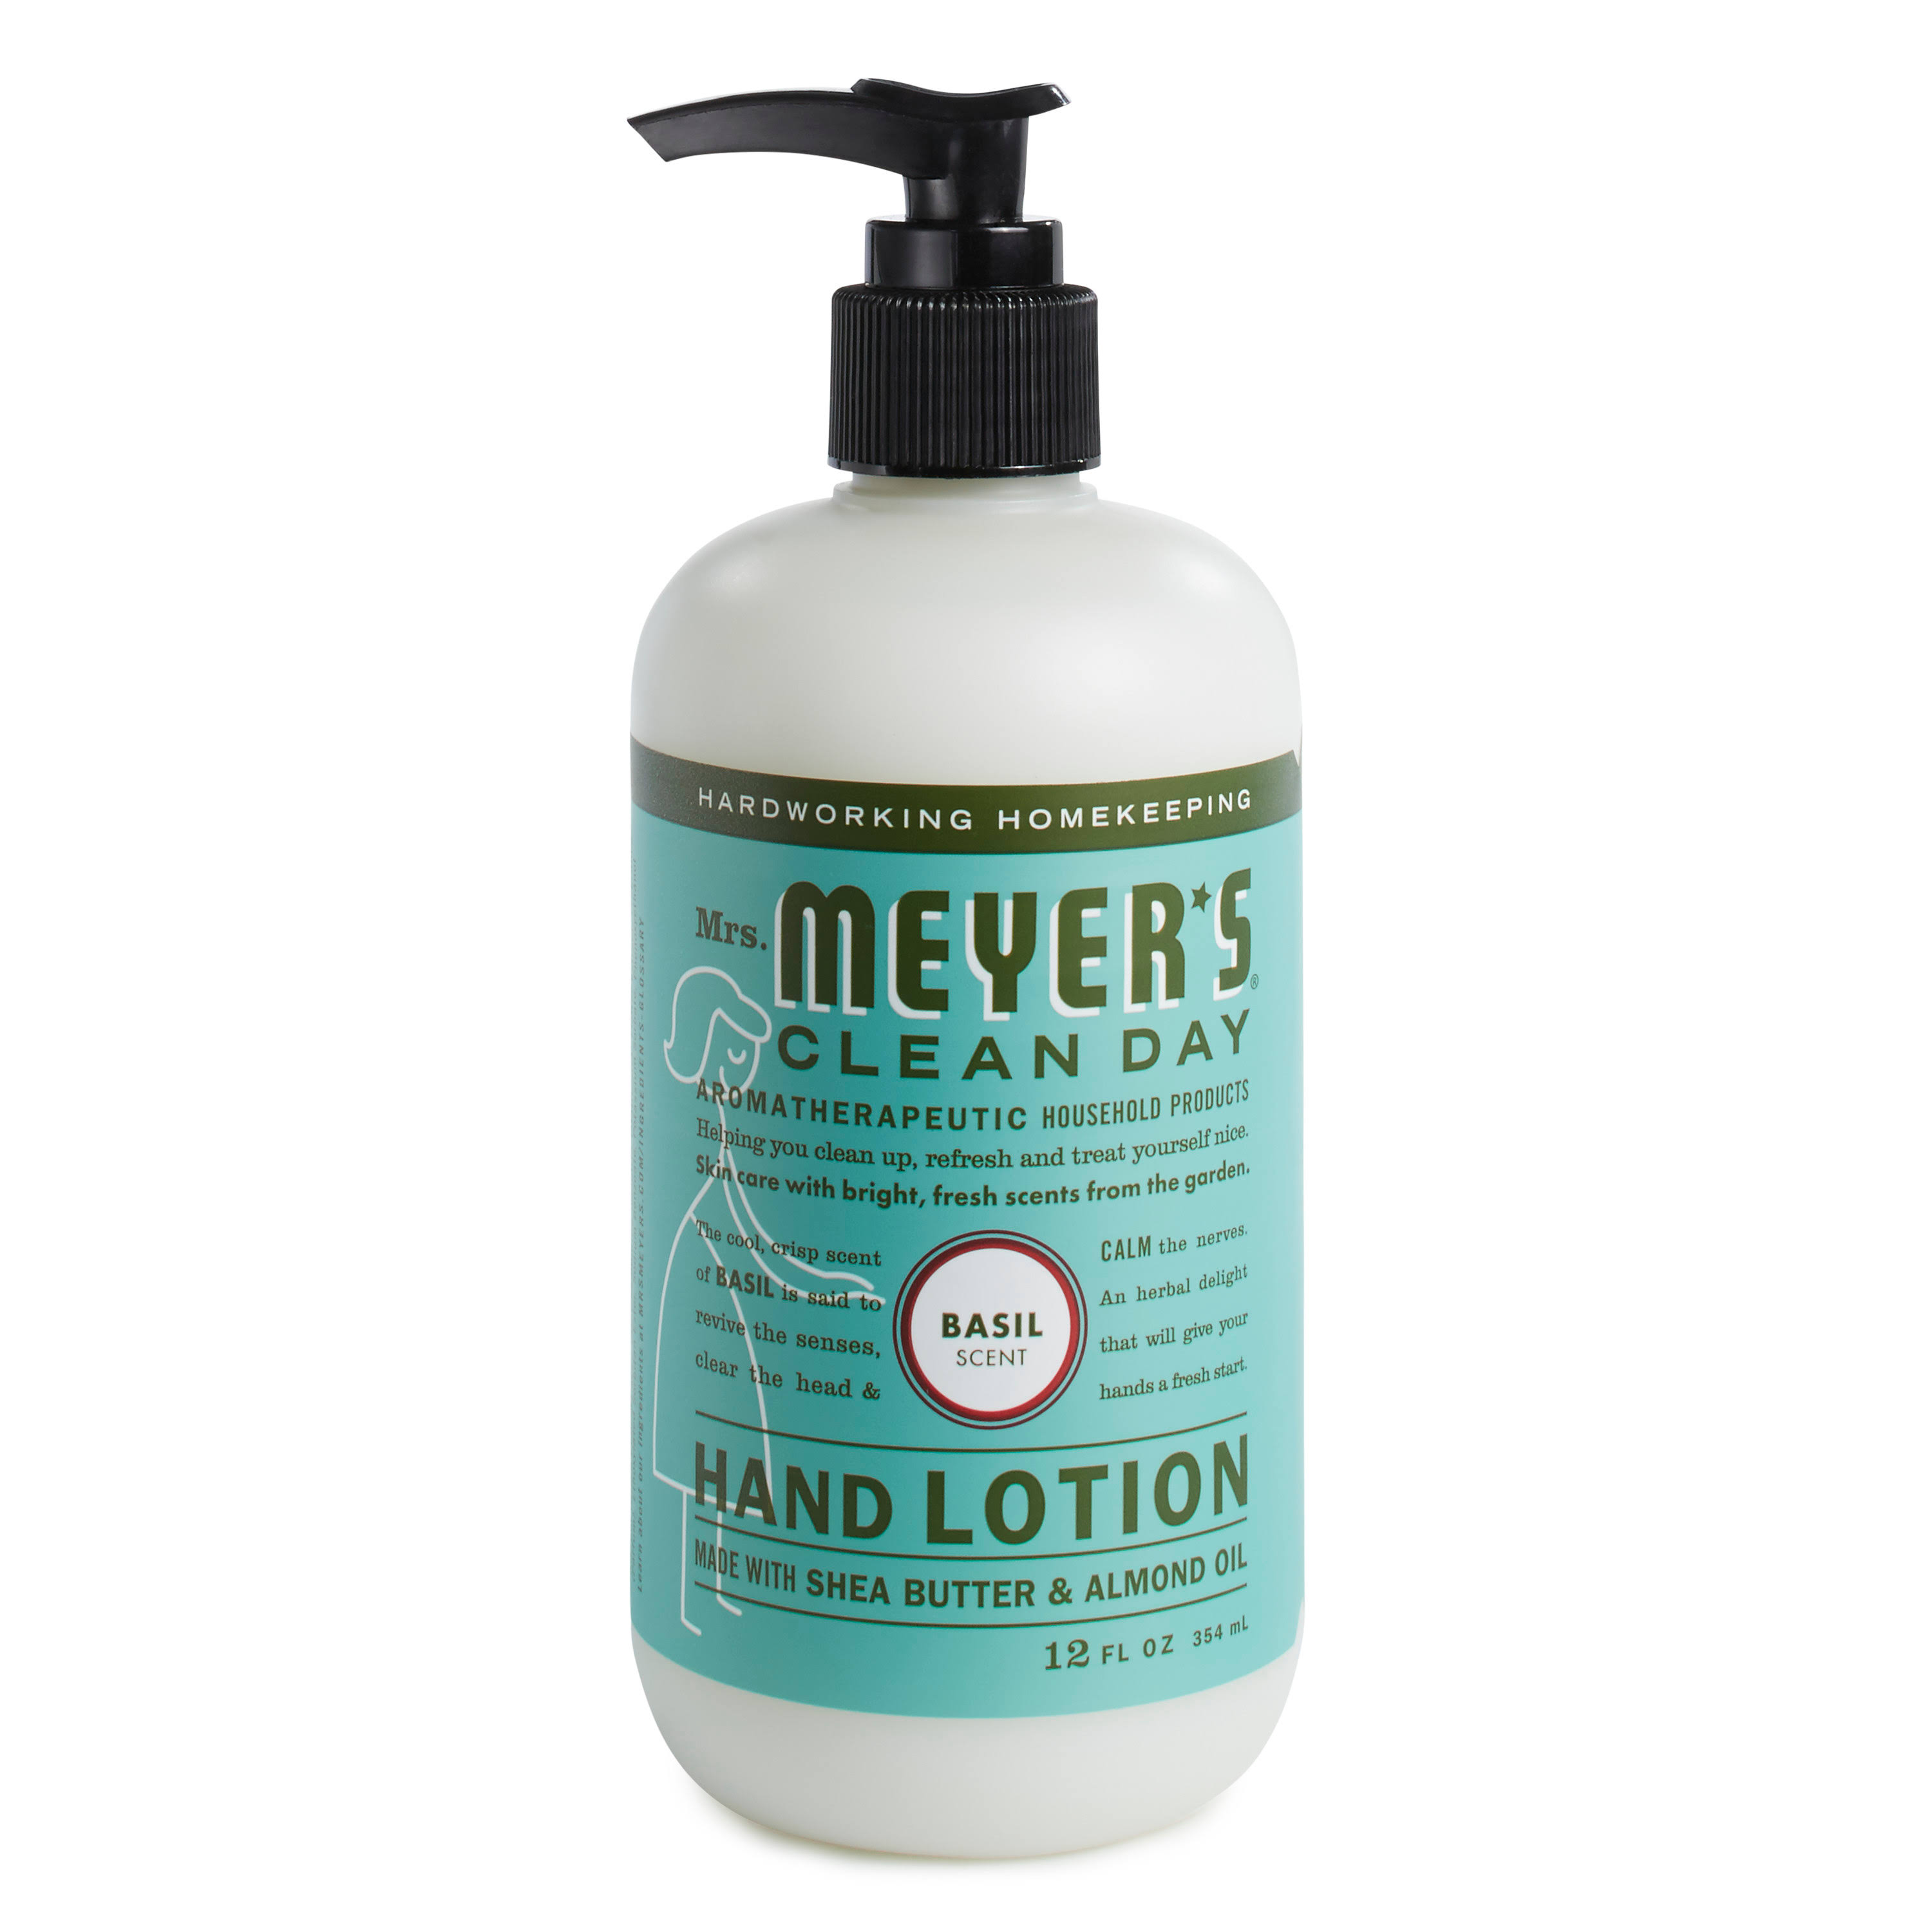 Mrs Meyers Clean Day Hand Lotion, Basil Scent - 12 fl oz